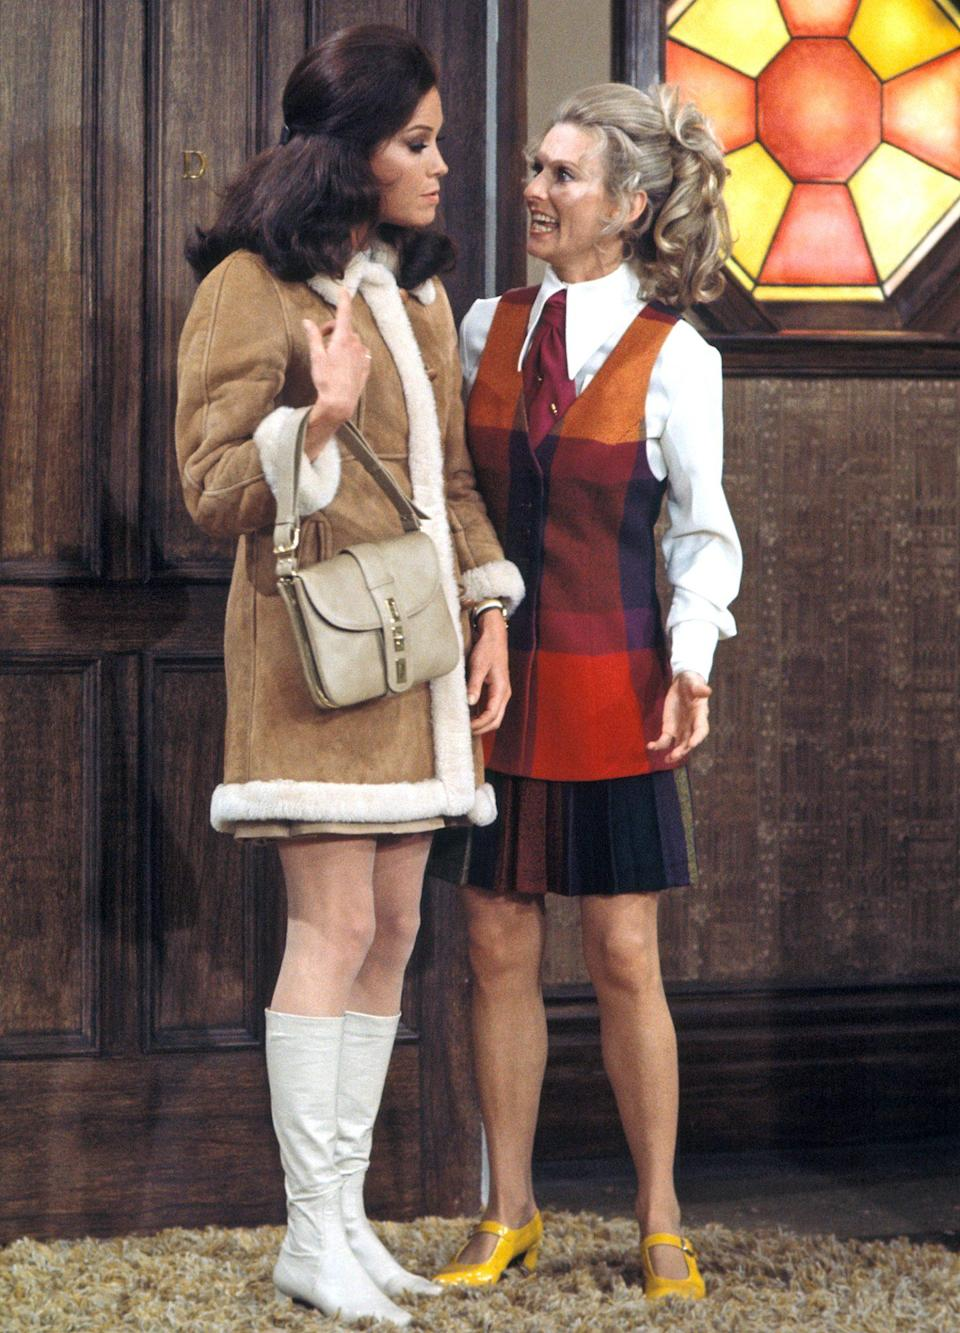 <p>The actress' big break came in 1970 with <em>The Mary Tyler Moore Show, </em>on which she played Phyllis Lindstrom. She won two Emmys for the part and later scored a spinoff series, <em>Phyllis. </em>For that series, she won a Golden Globe. </p>